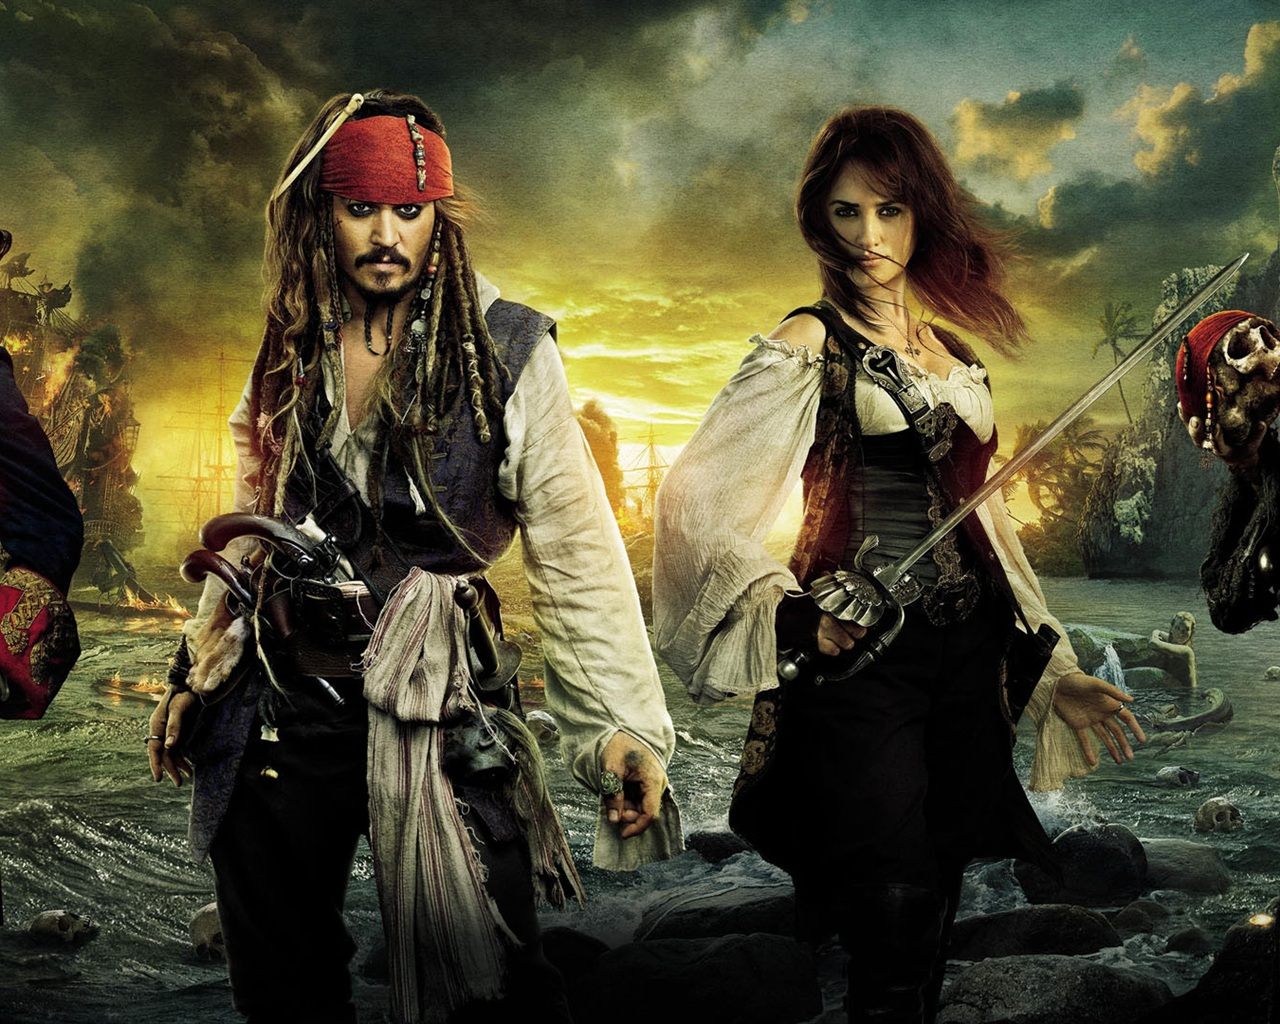 Wallpaper Pirates Of The Caribbean On Stranger Tides Hd 1920x1080